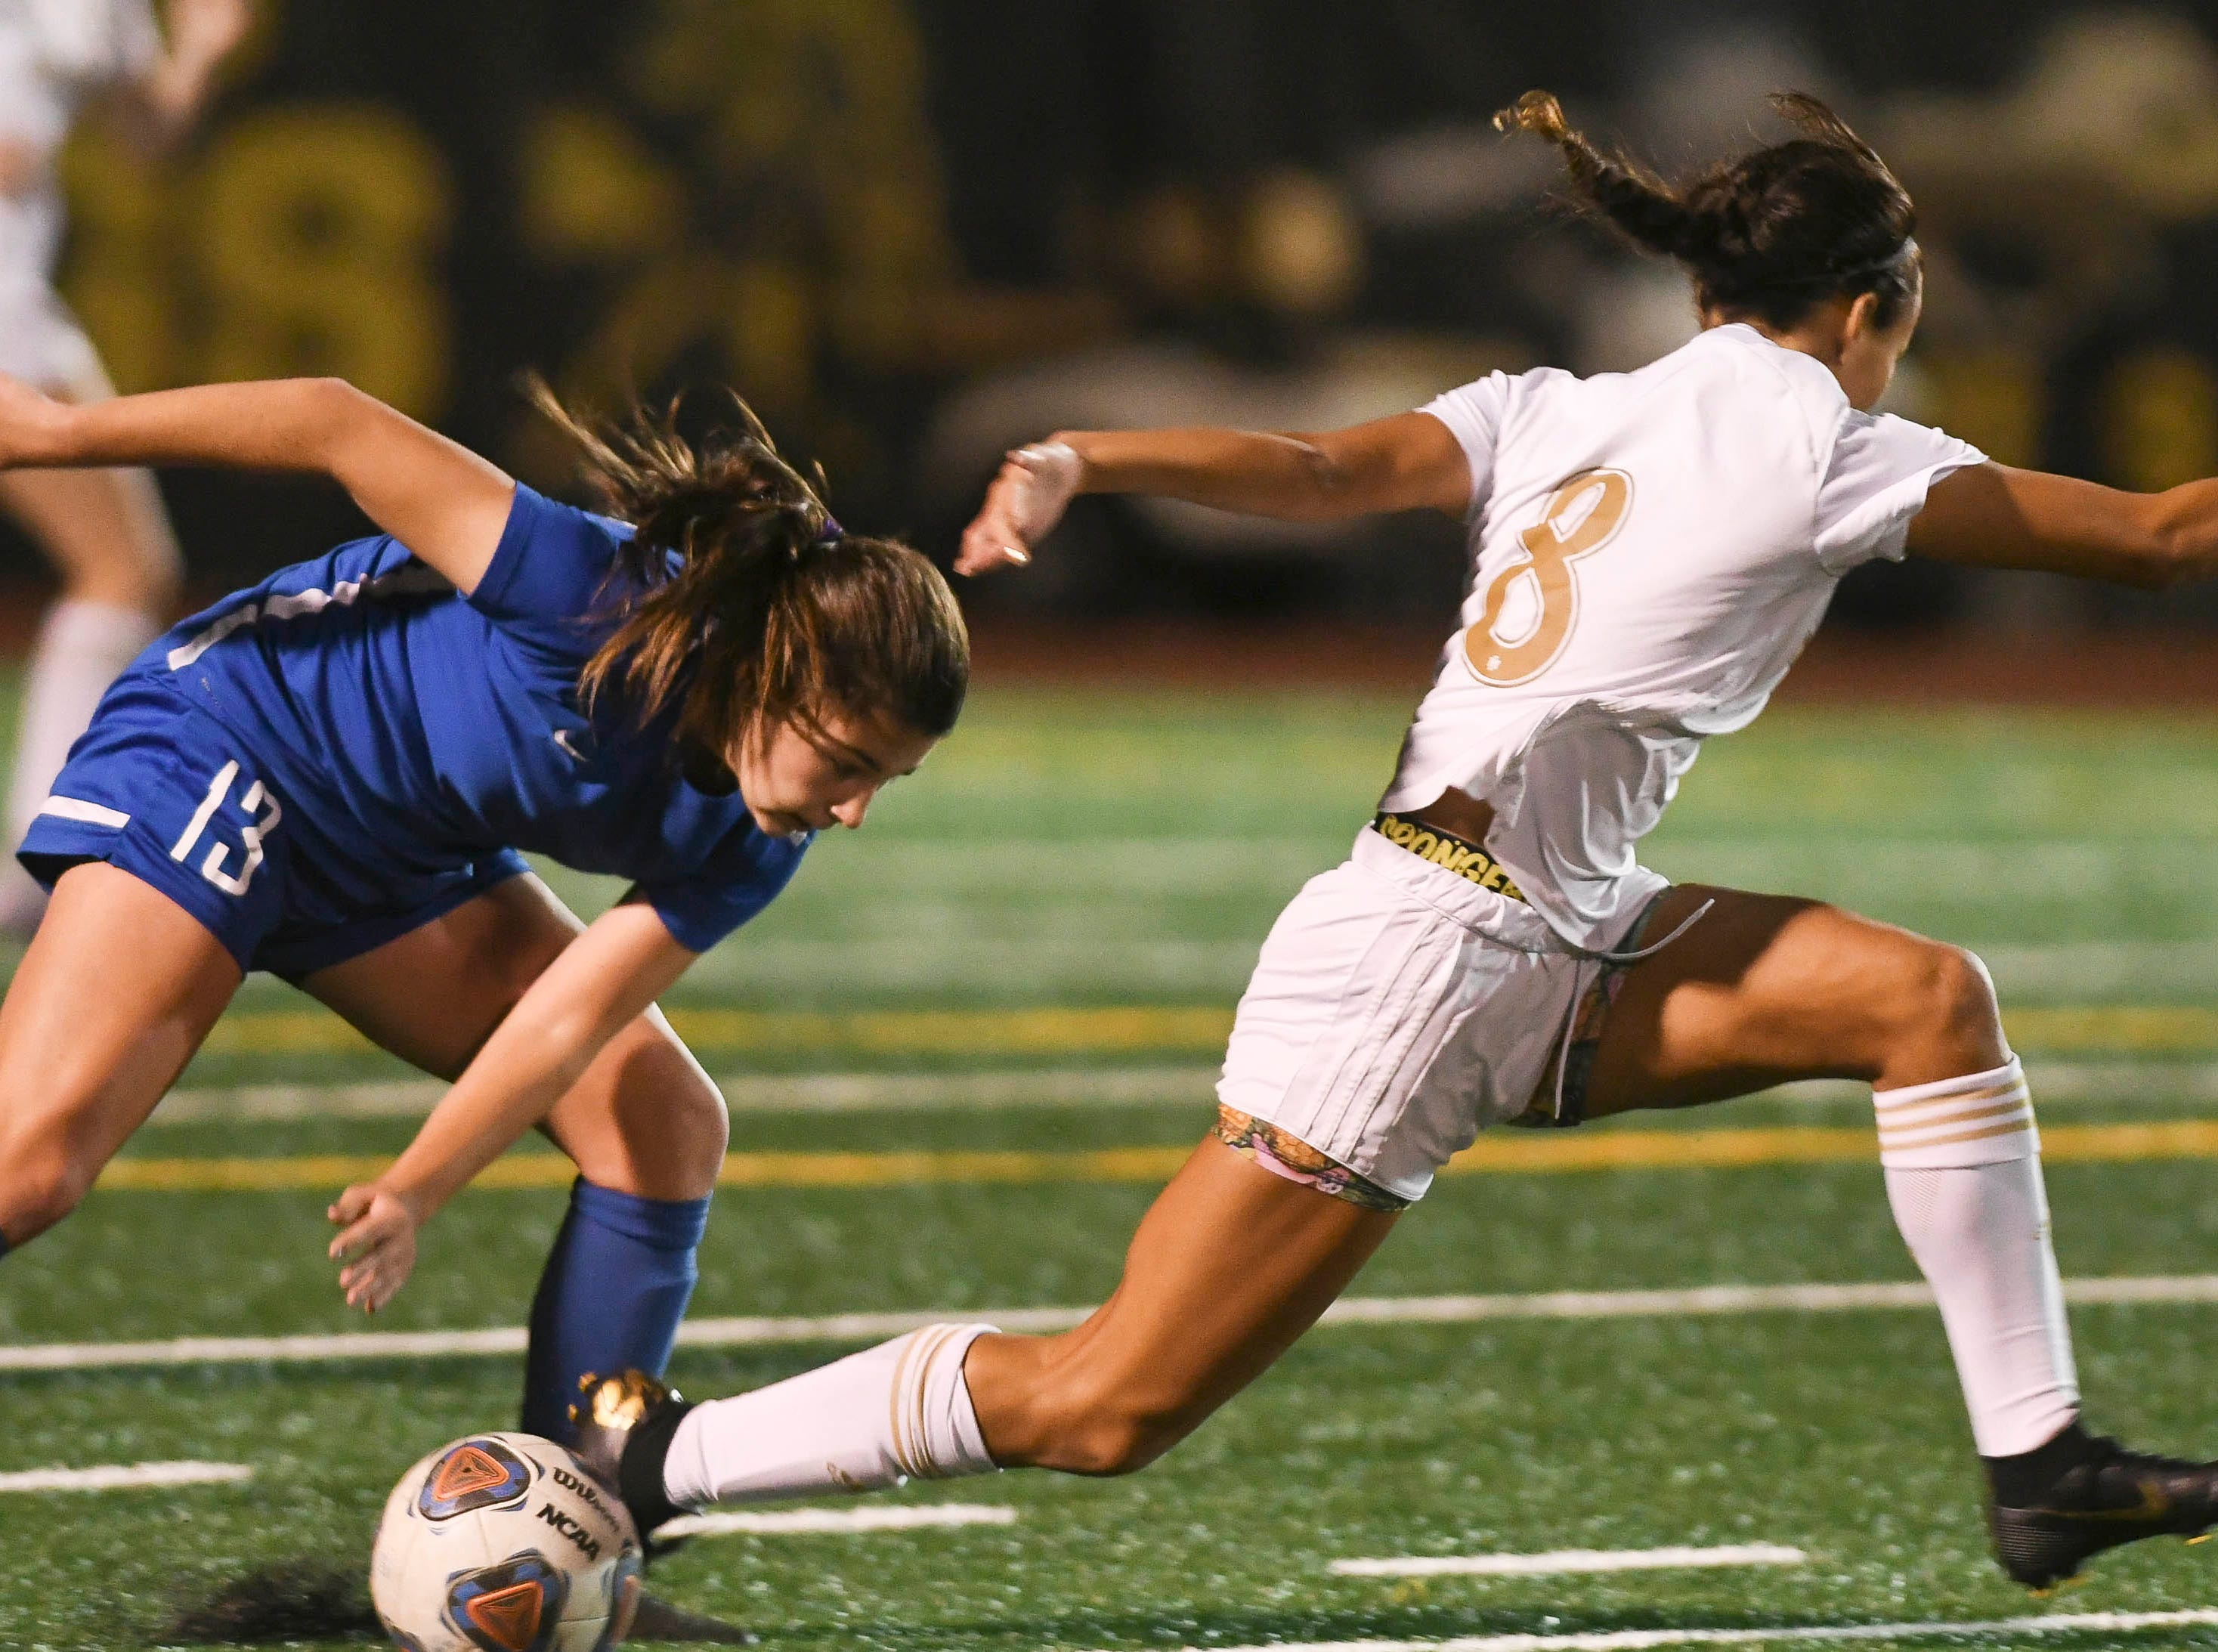 Titusville's Raelyn Prince (13) and JoJo Michaels of Merritt Island trip over each other during Tuesday's District 12, Class 3A soccer semifinal.